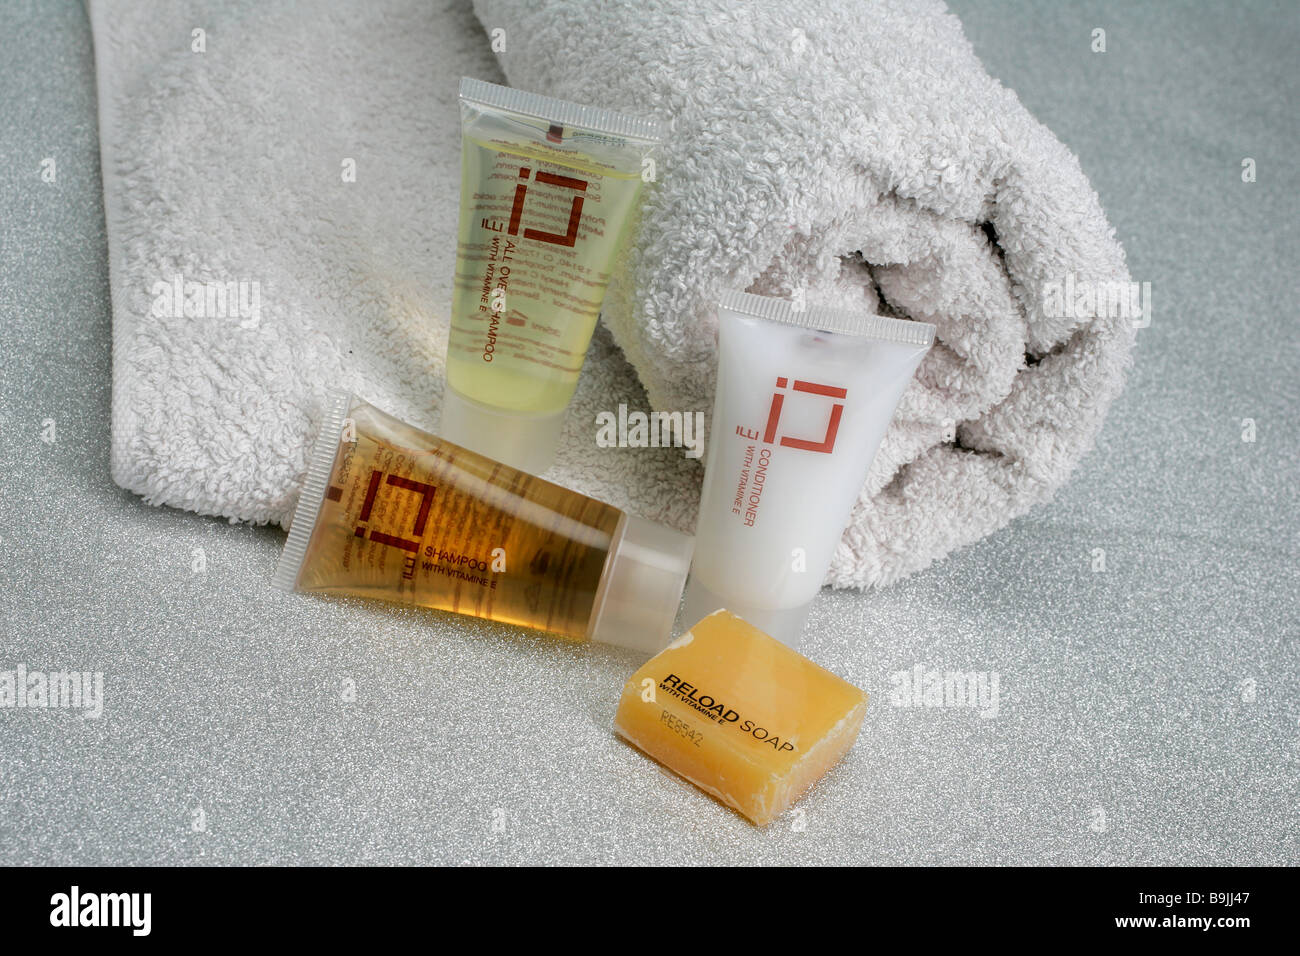 Hotel toiletries shampoo hair body products cosmetic flacon bathing beauty conditioner gel lotion product products - Stock Image